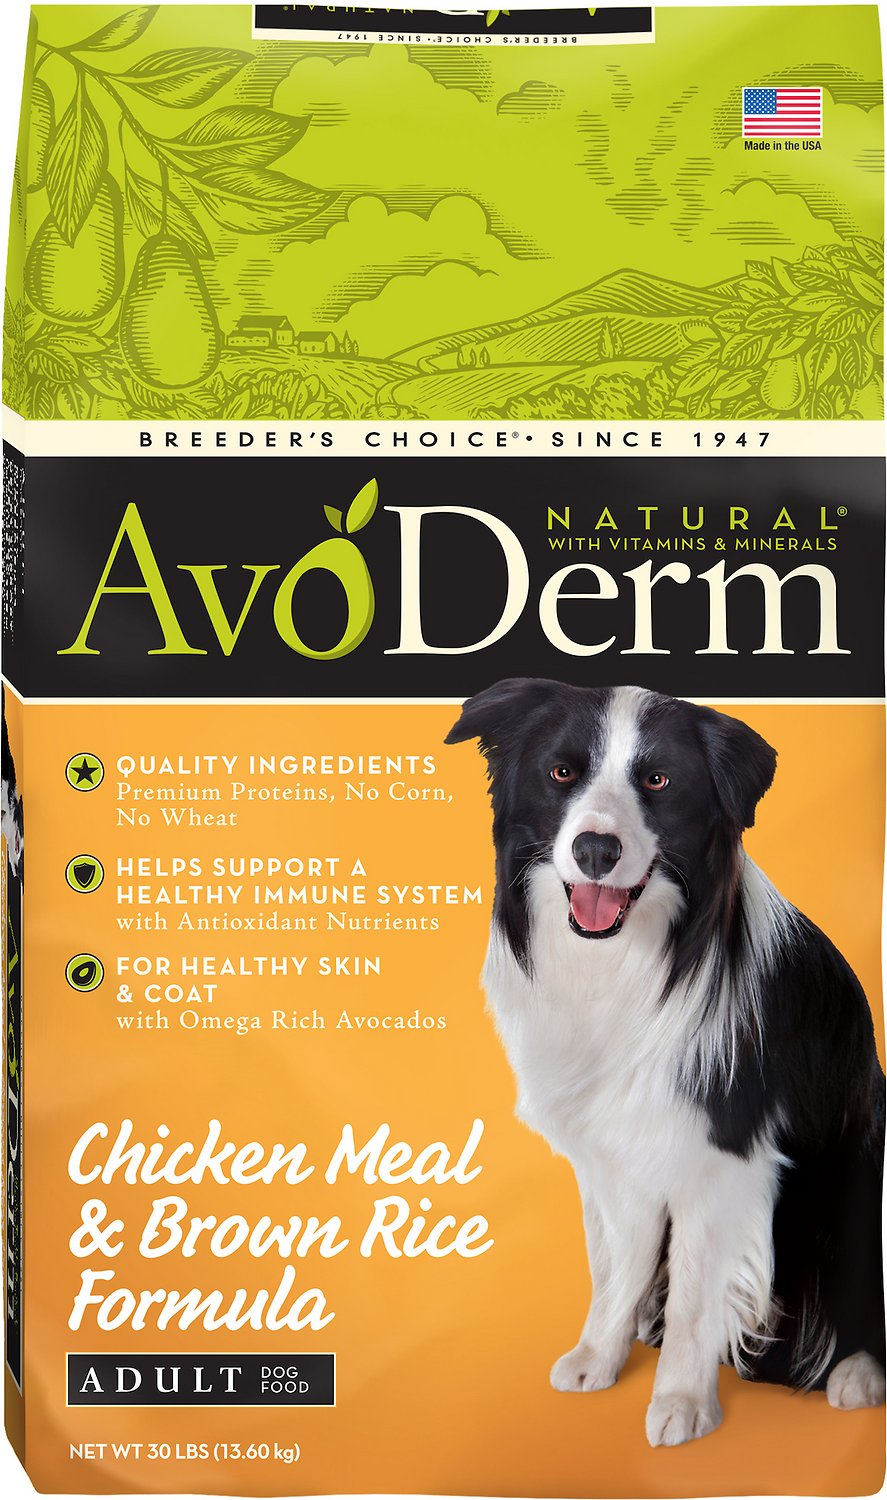 AvoDerm Natural Chicken Meal & Brown Rice Formula Adult Dry Dog Food Image